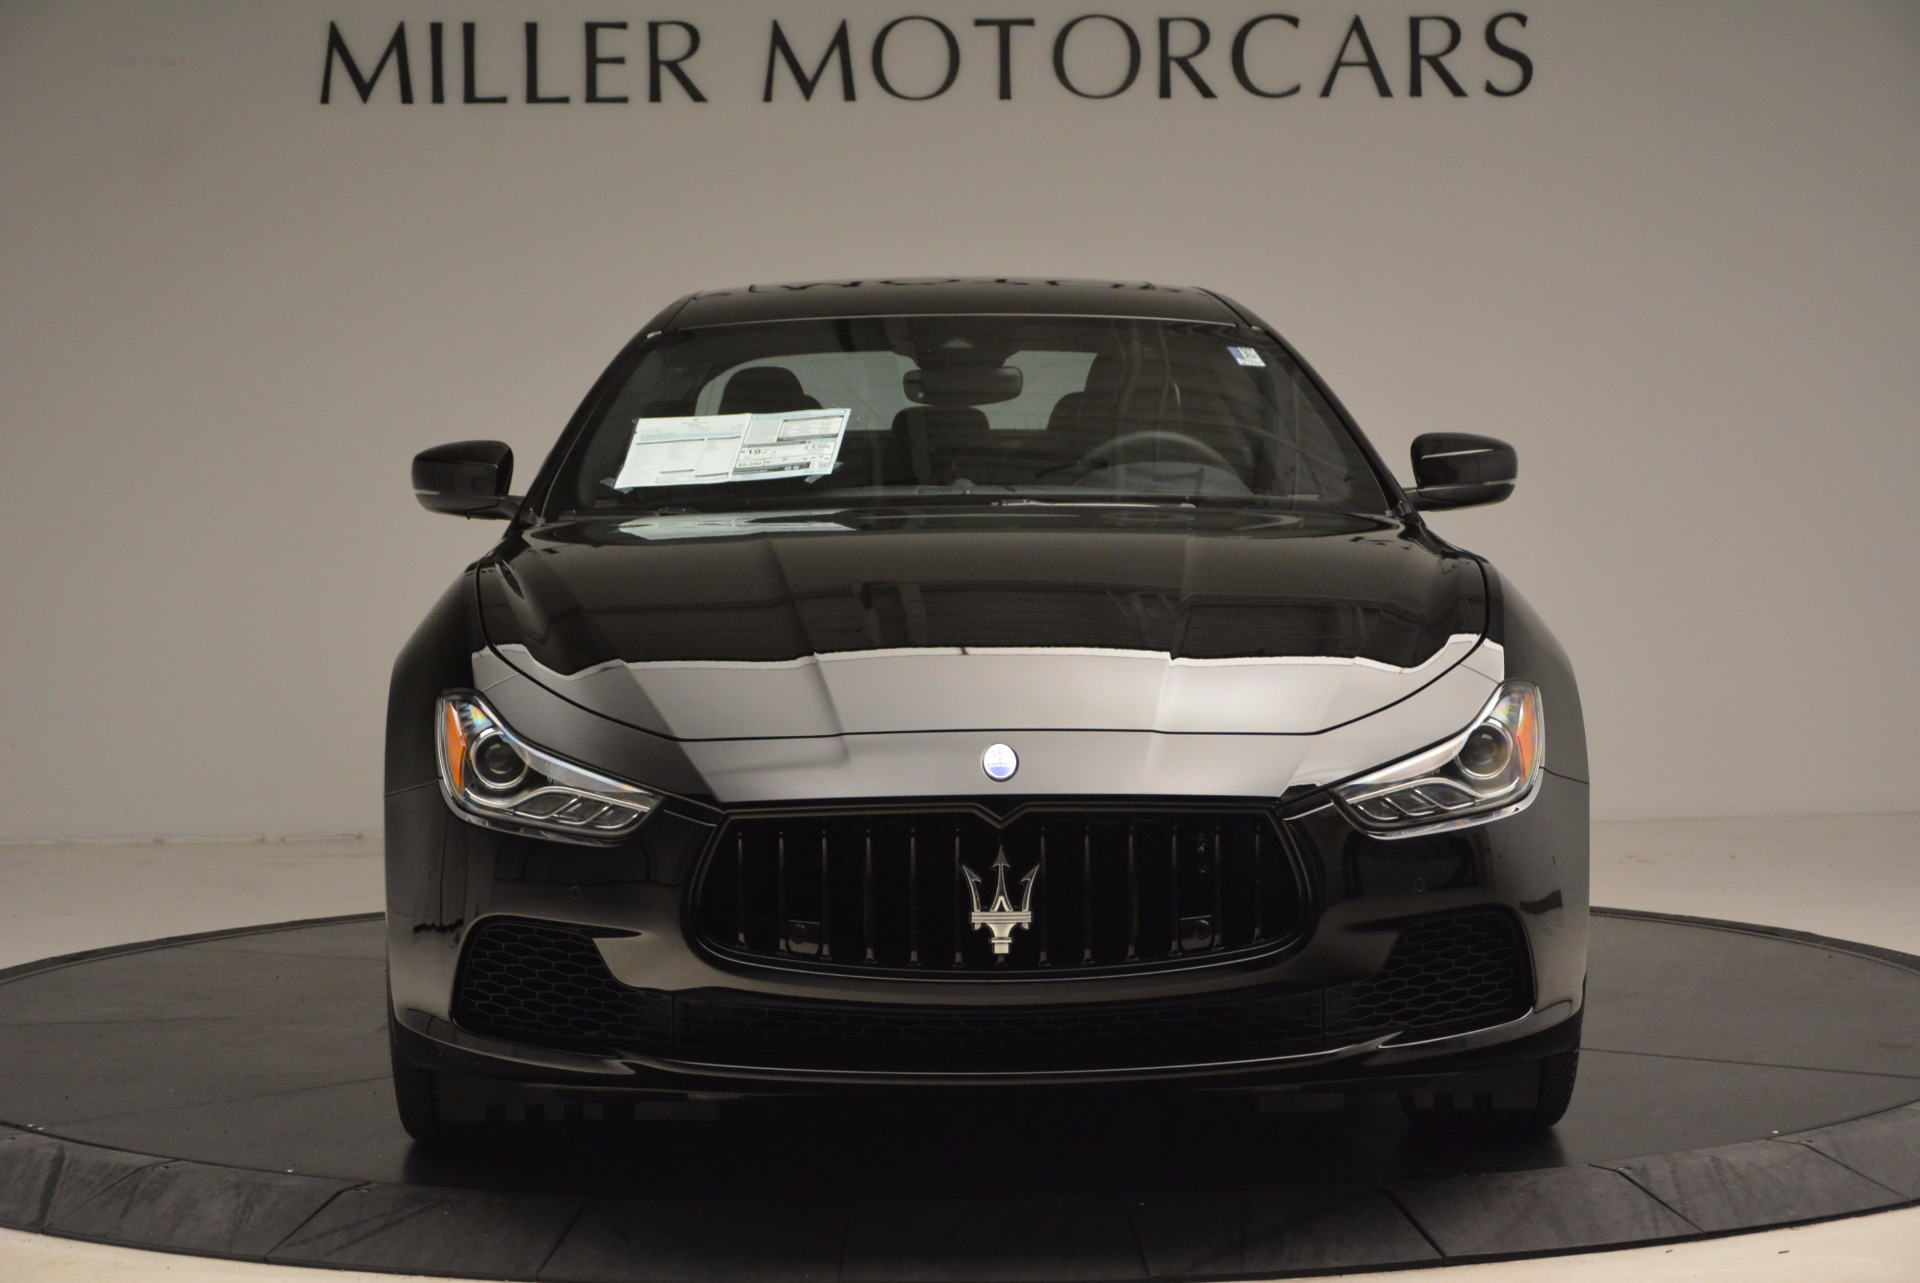 New 2017 Maserati Ghibli Nerissimo Edition S Q4 For Sale In Westport, CT 1391_p12